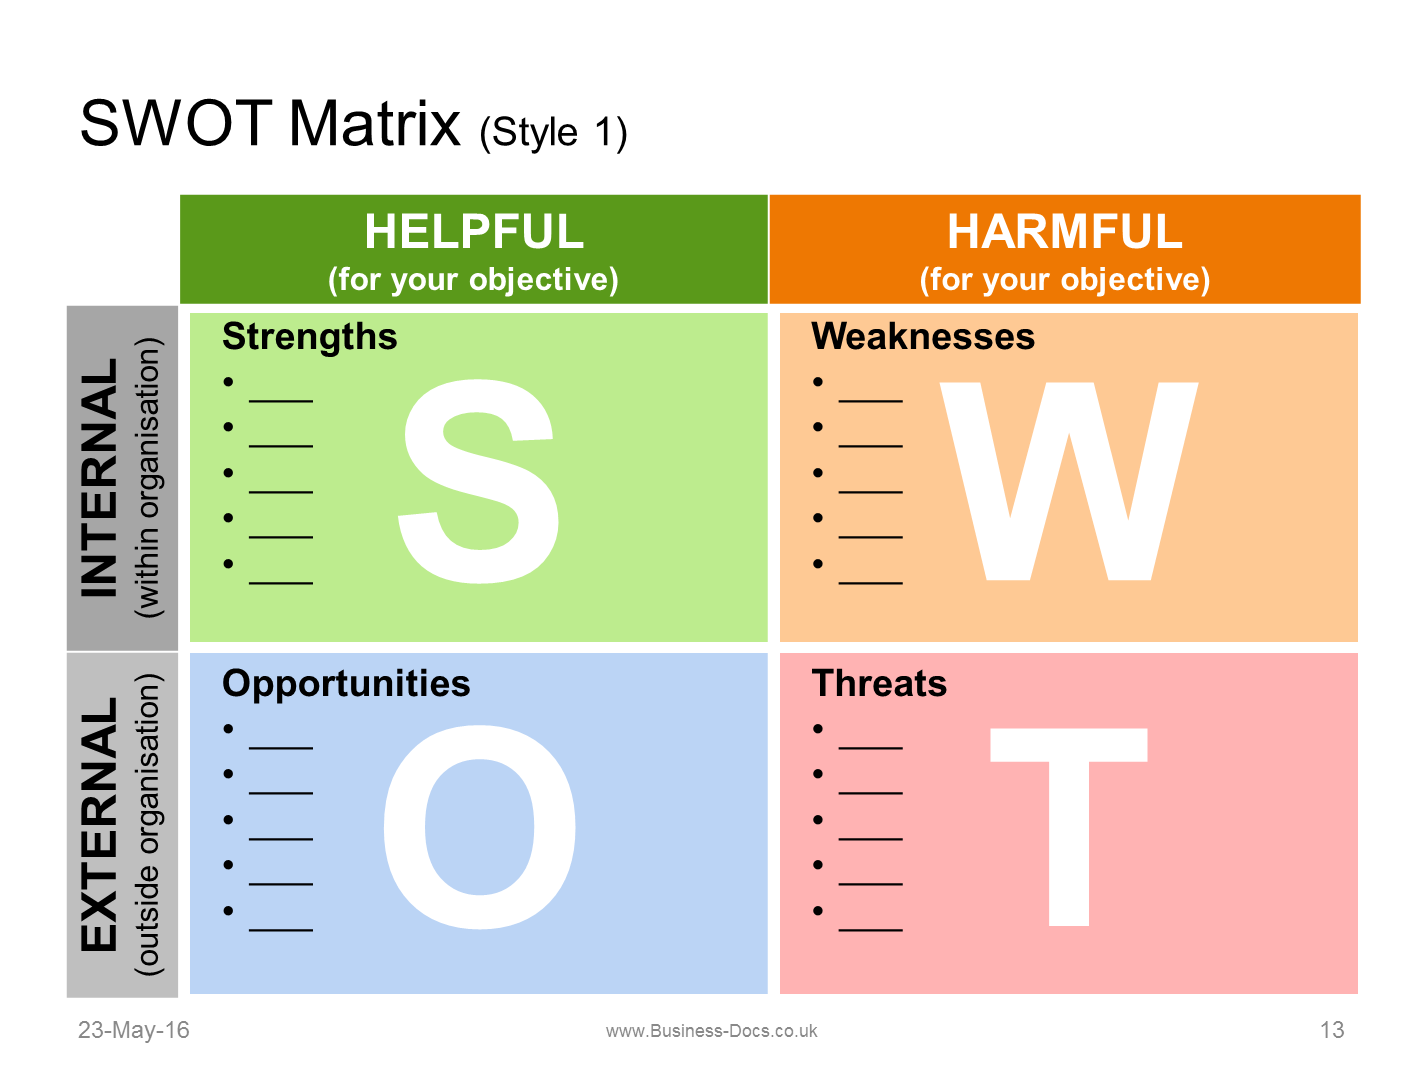 swot analysis templates data analysis pinterest swot